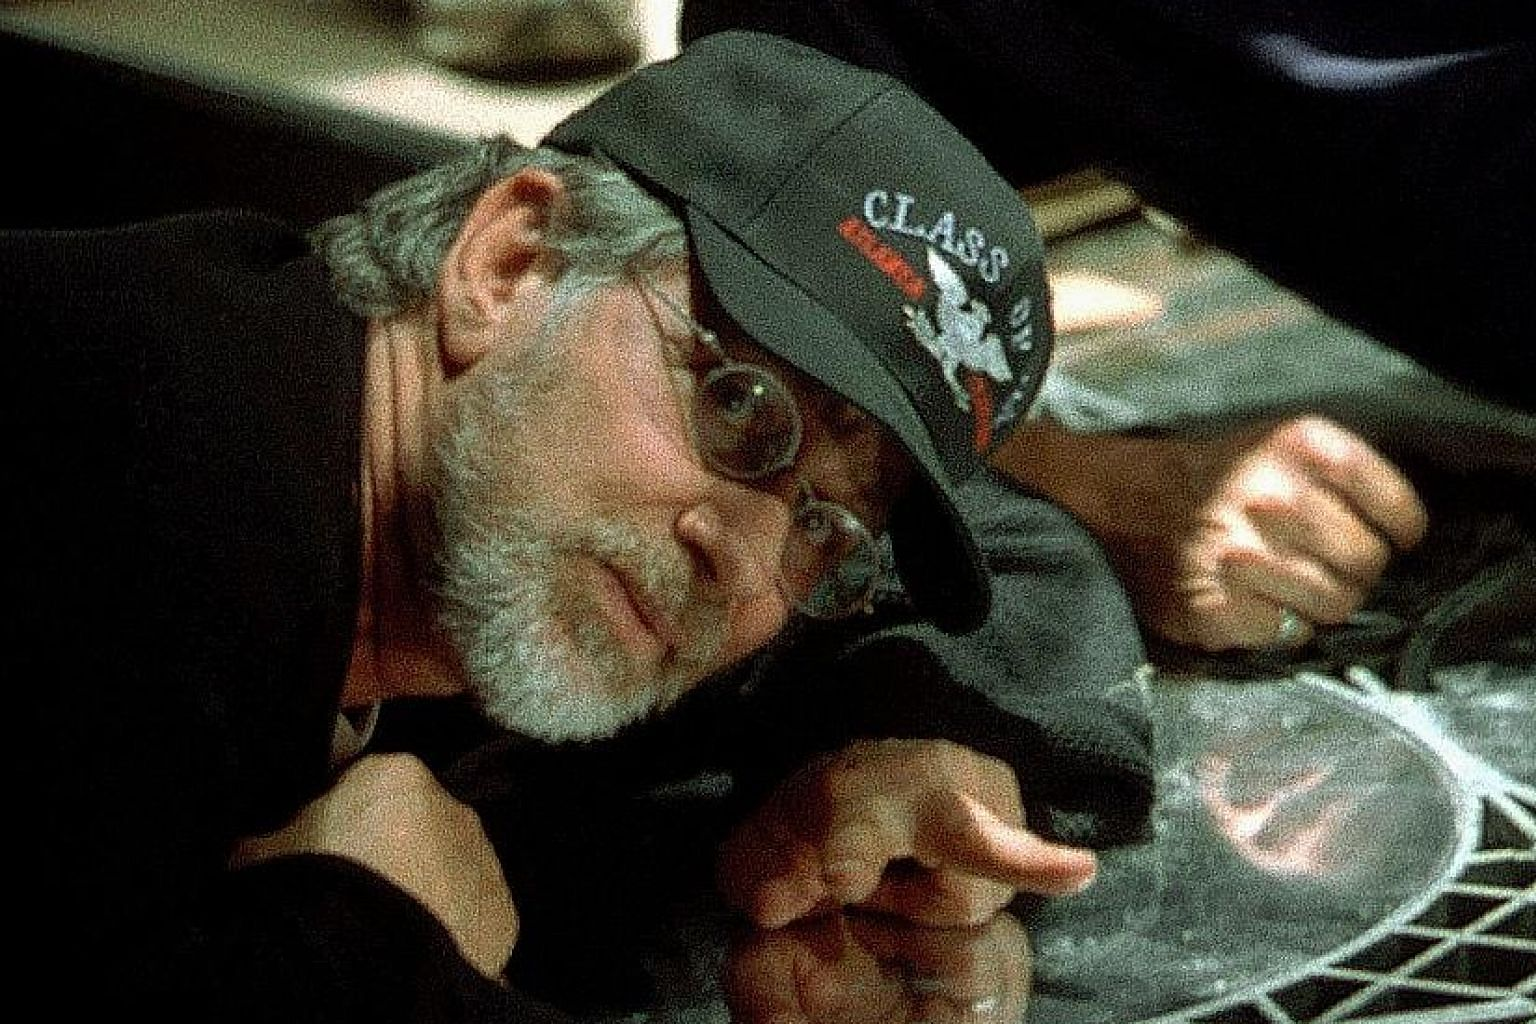 The documentary Spielberg features Steven Spielberg's storied career, which includes filming Minority Report (2002, above).